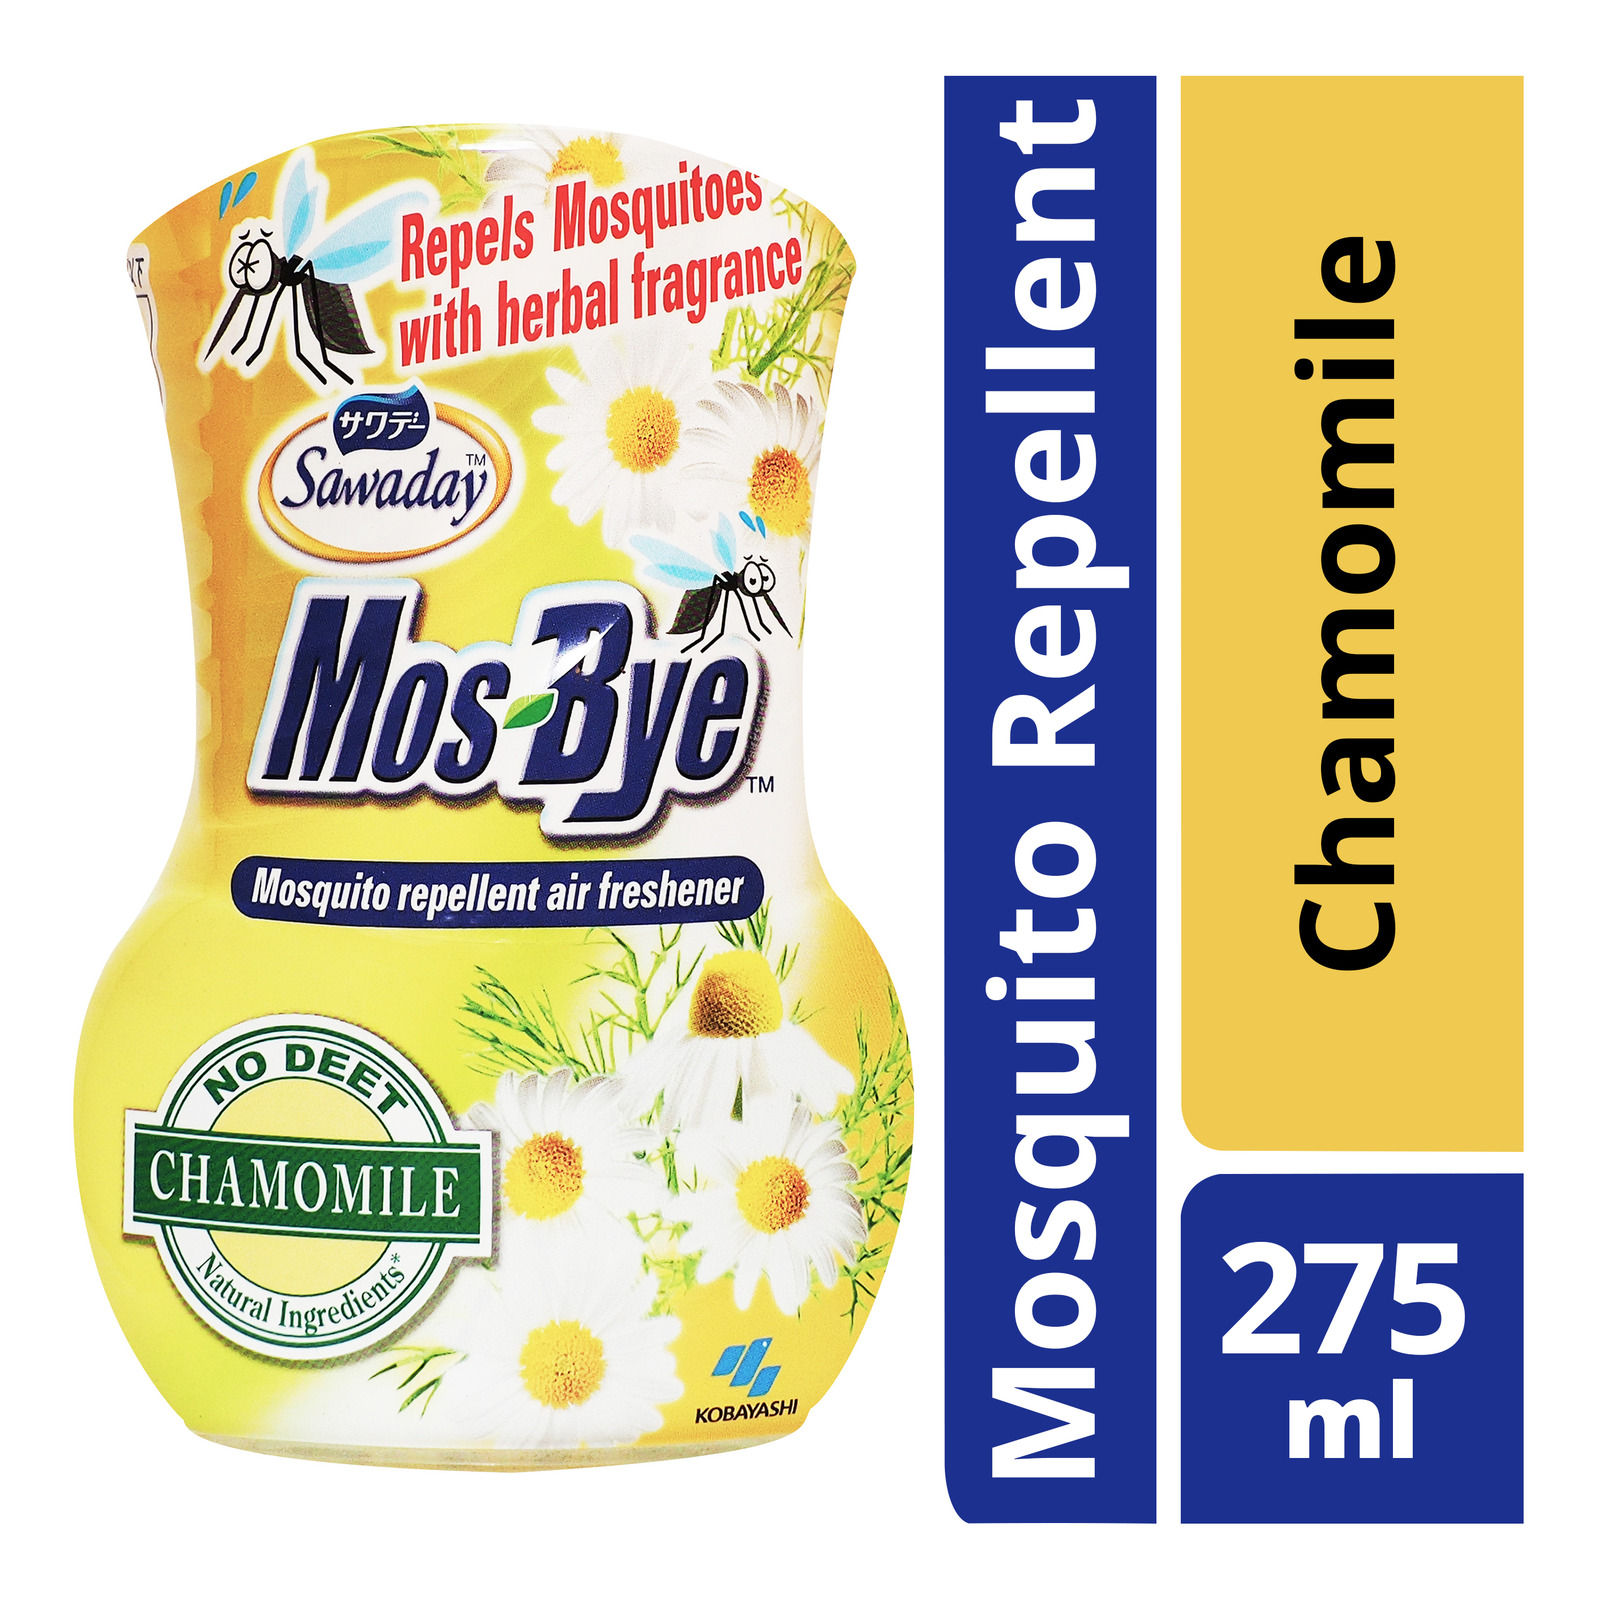 Sawaday Mosquito Repellent Air Freshener - Chamomile